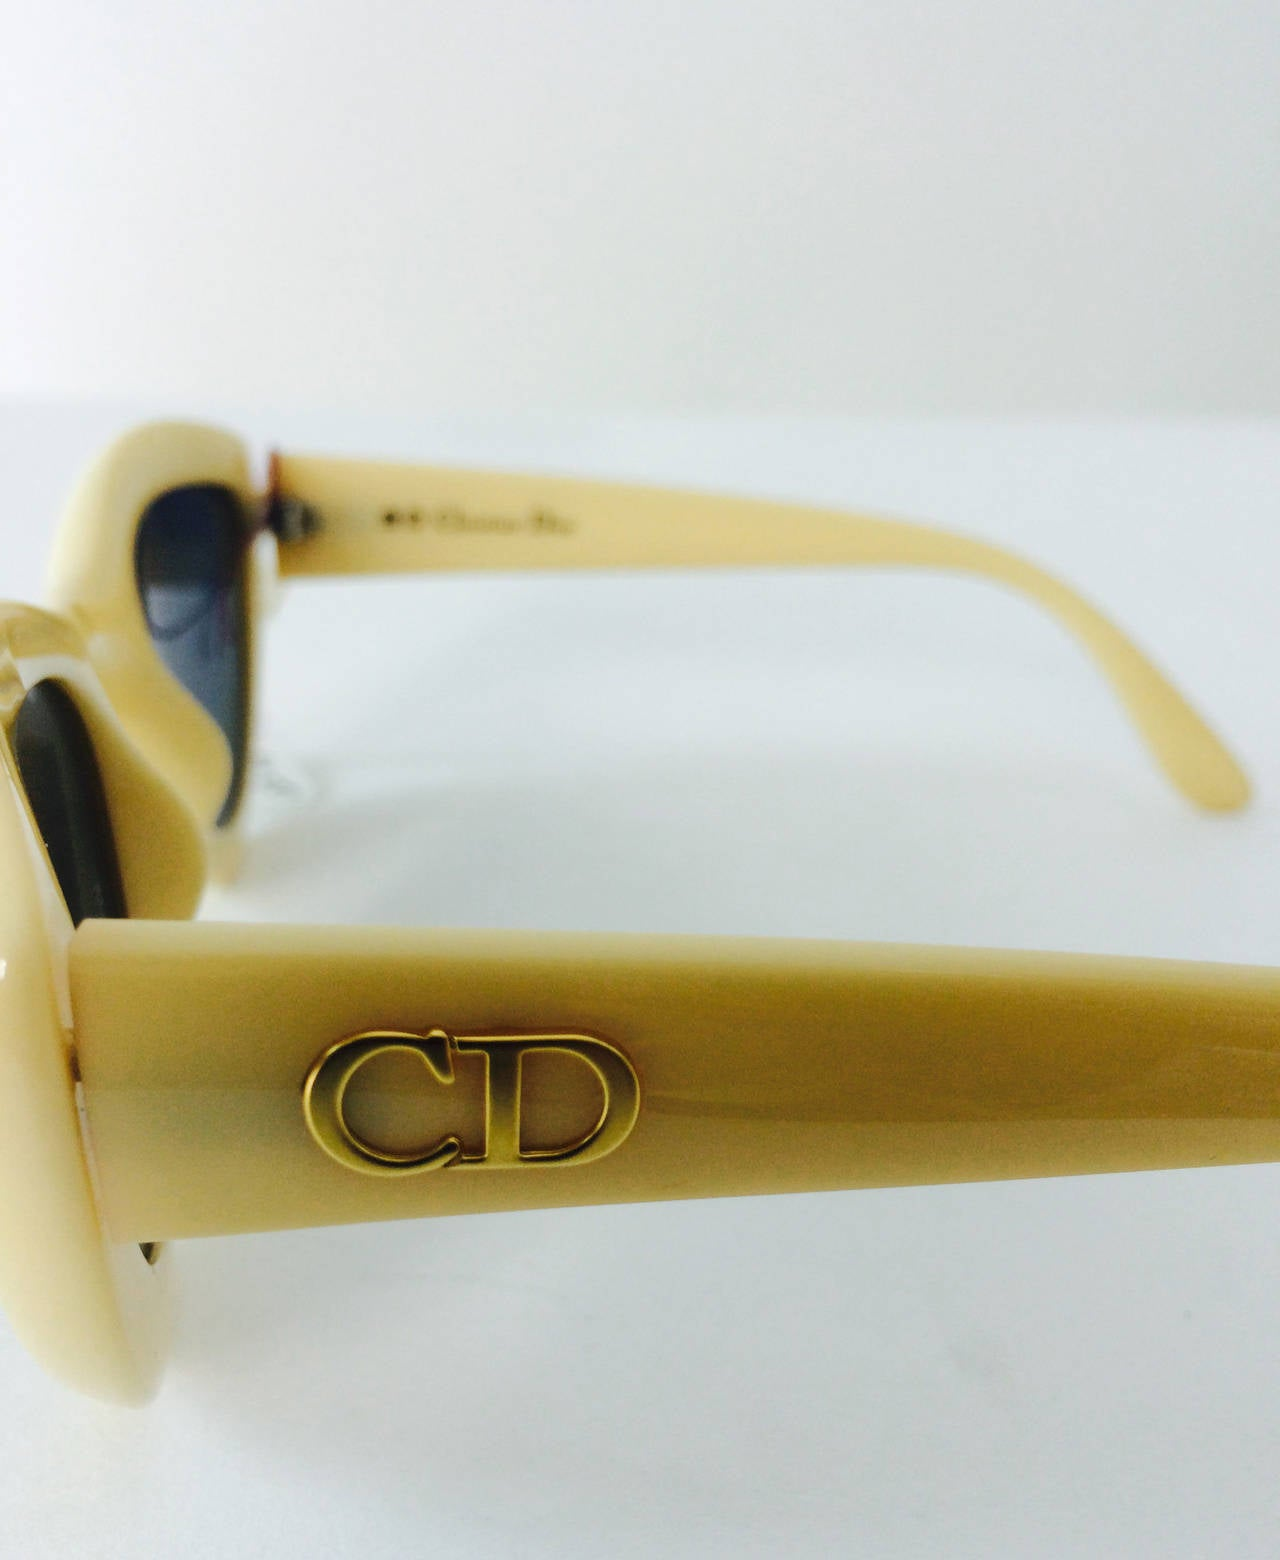 1970s Christian Dior sunglasses in ivory new with tags In New Never_worn Condition For Sale In West Palm Beach, FL